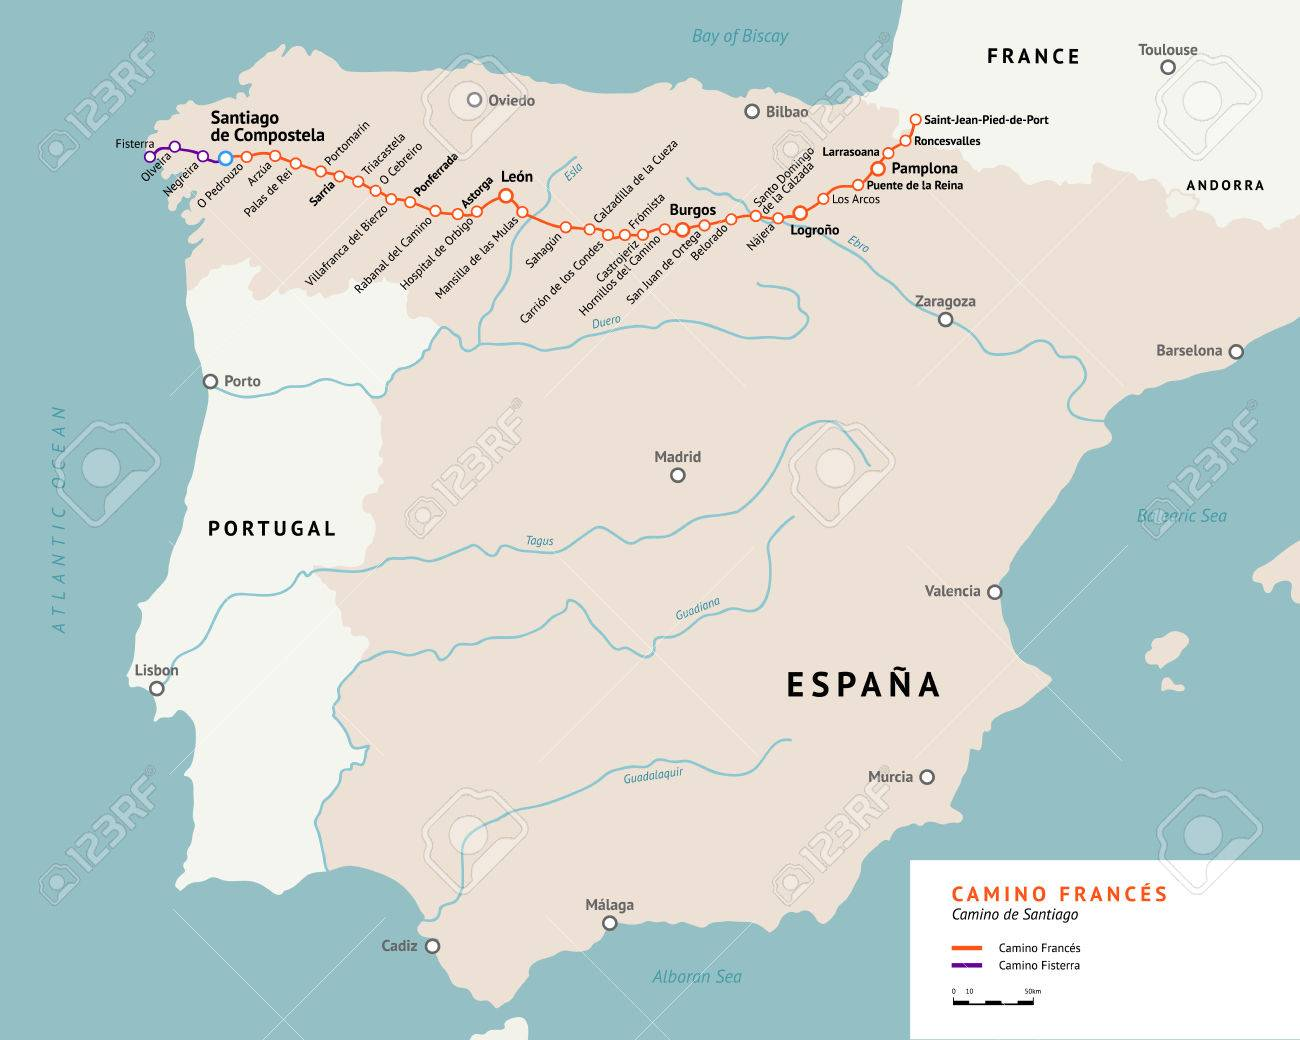 3ba217ed3eafc French Way Map. Camino De Santiago Or The Way Of St.James. France ...